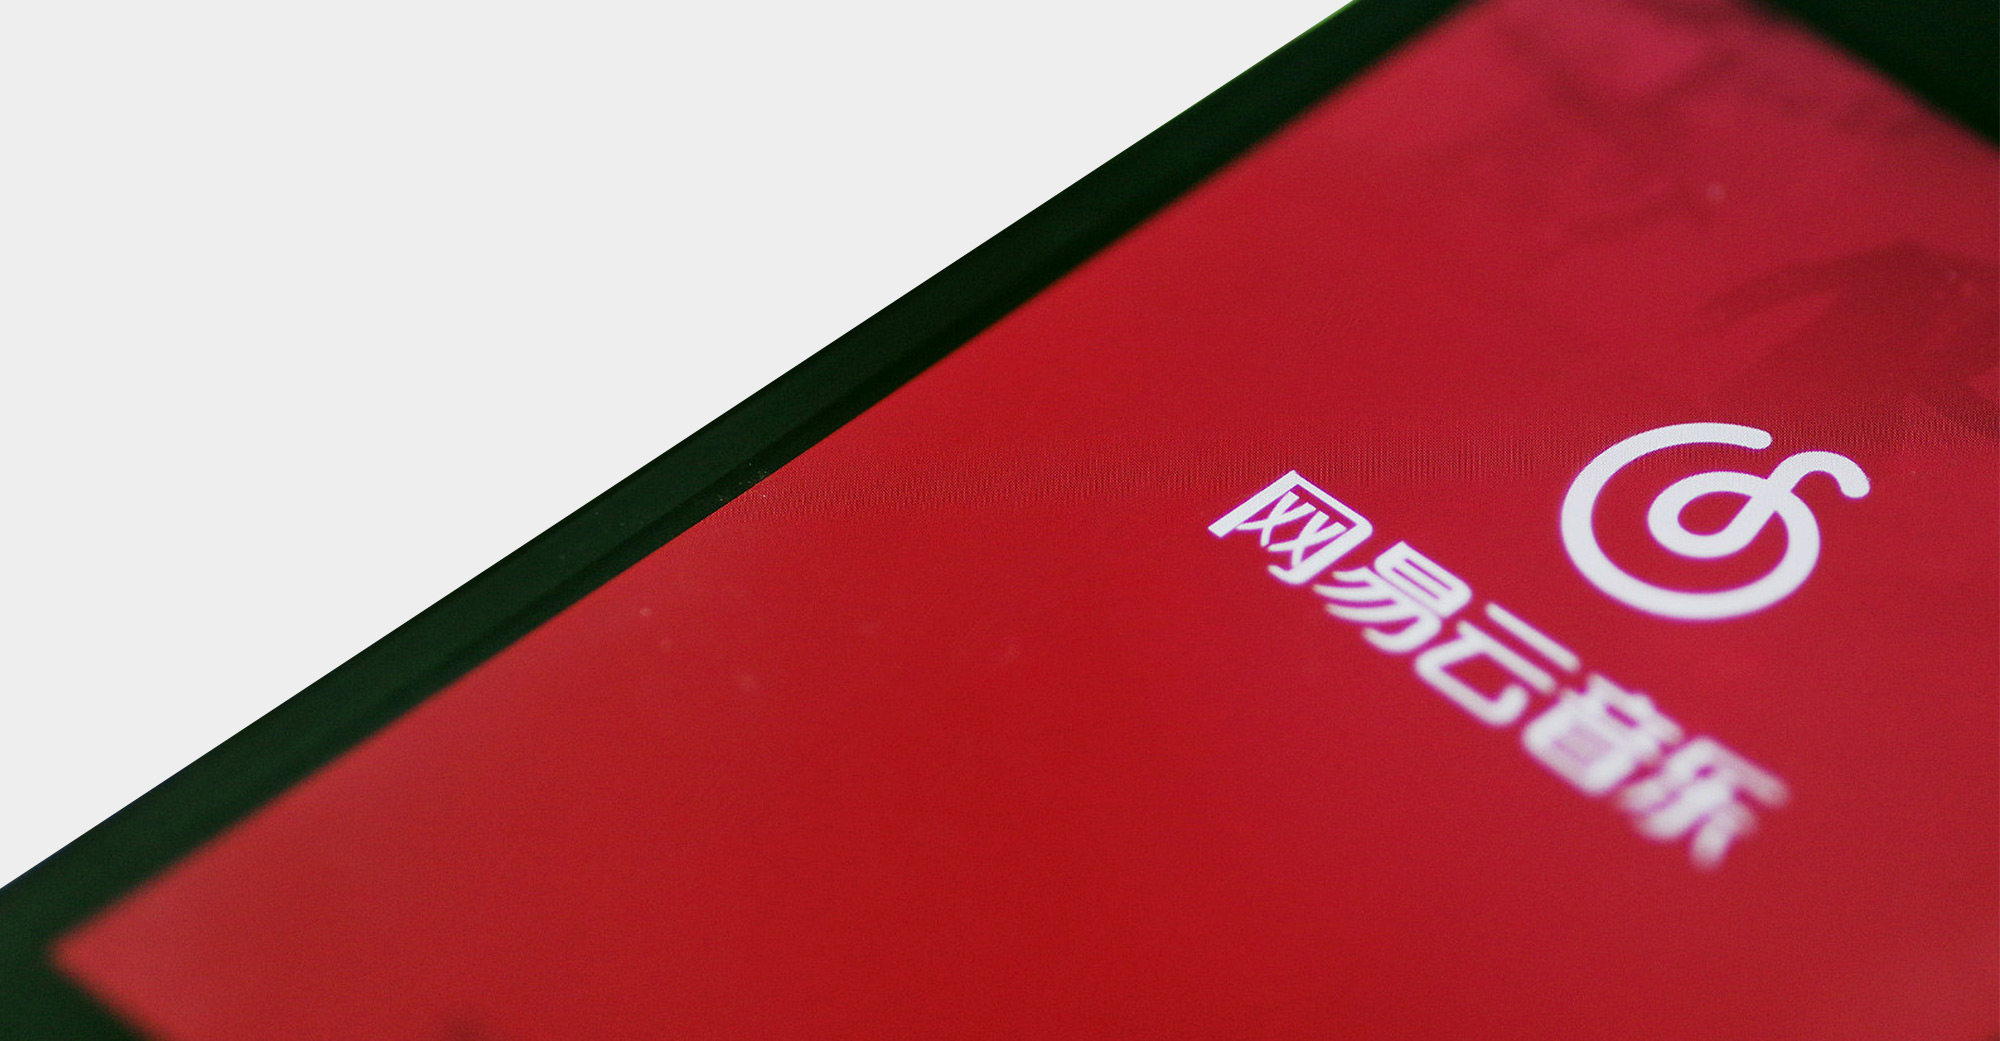 NetEase's Music Arm Partners With Japan's Nippon Columbia